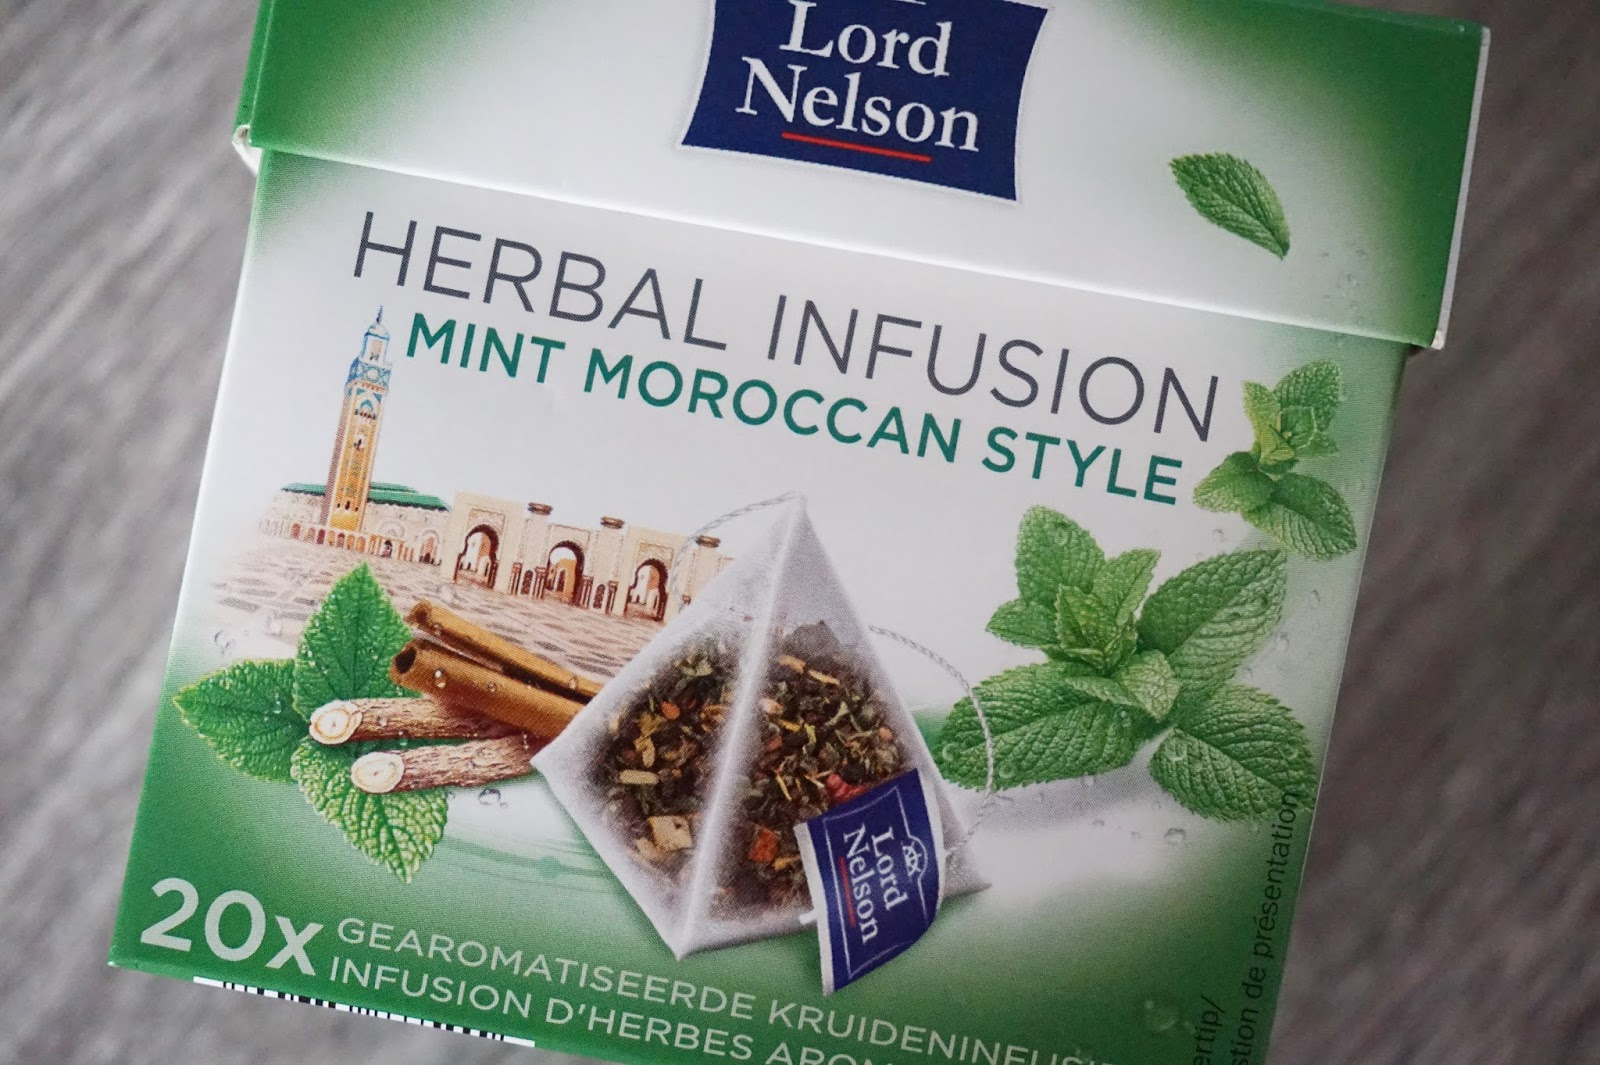 lord nelson herbal infusion mint moroccan style thee lidl